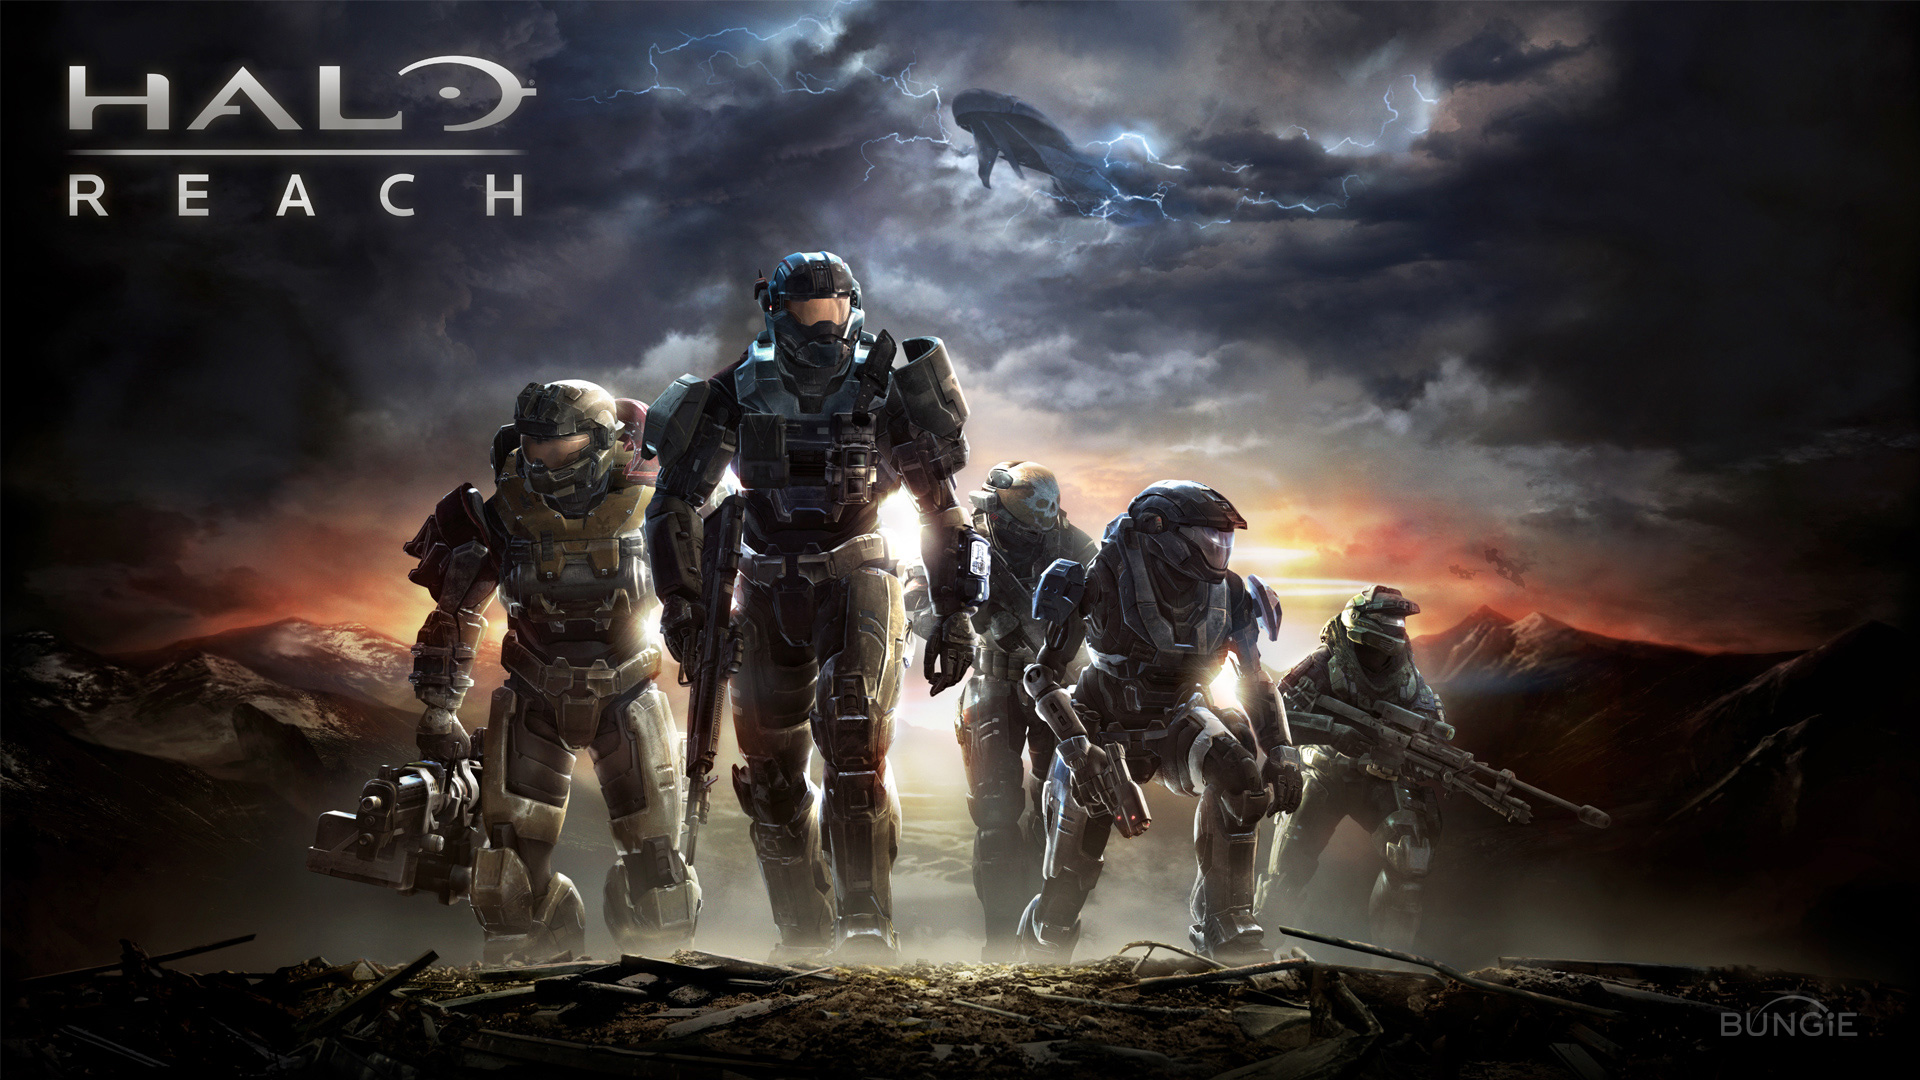 HALO HD Wallpapers and Backgrounds